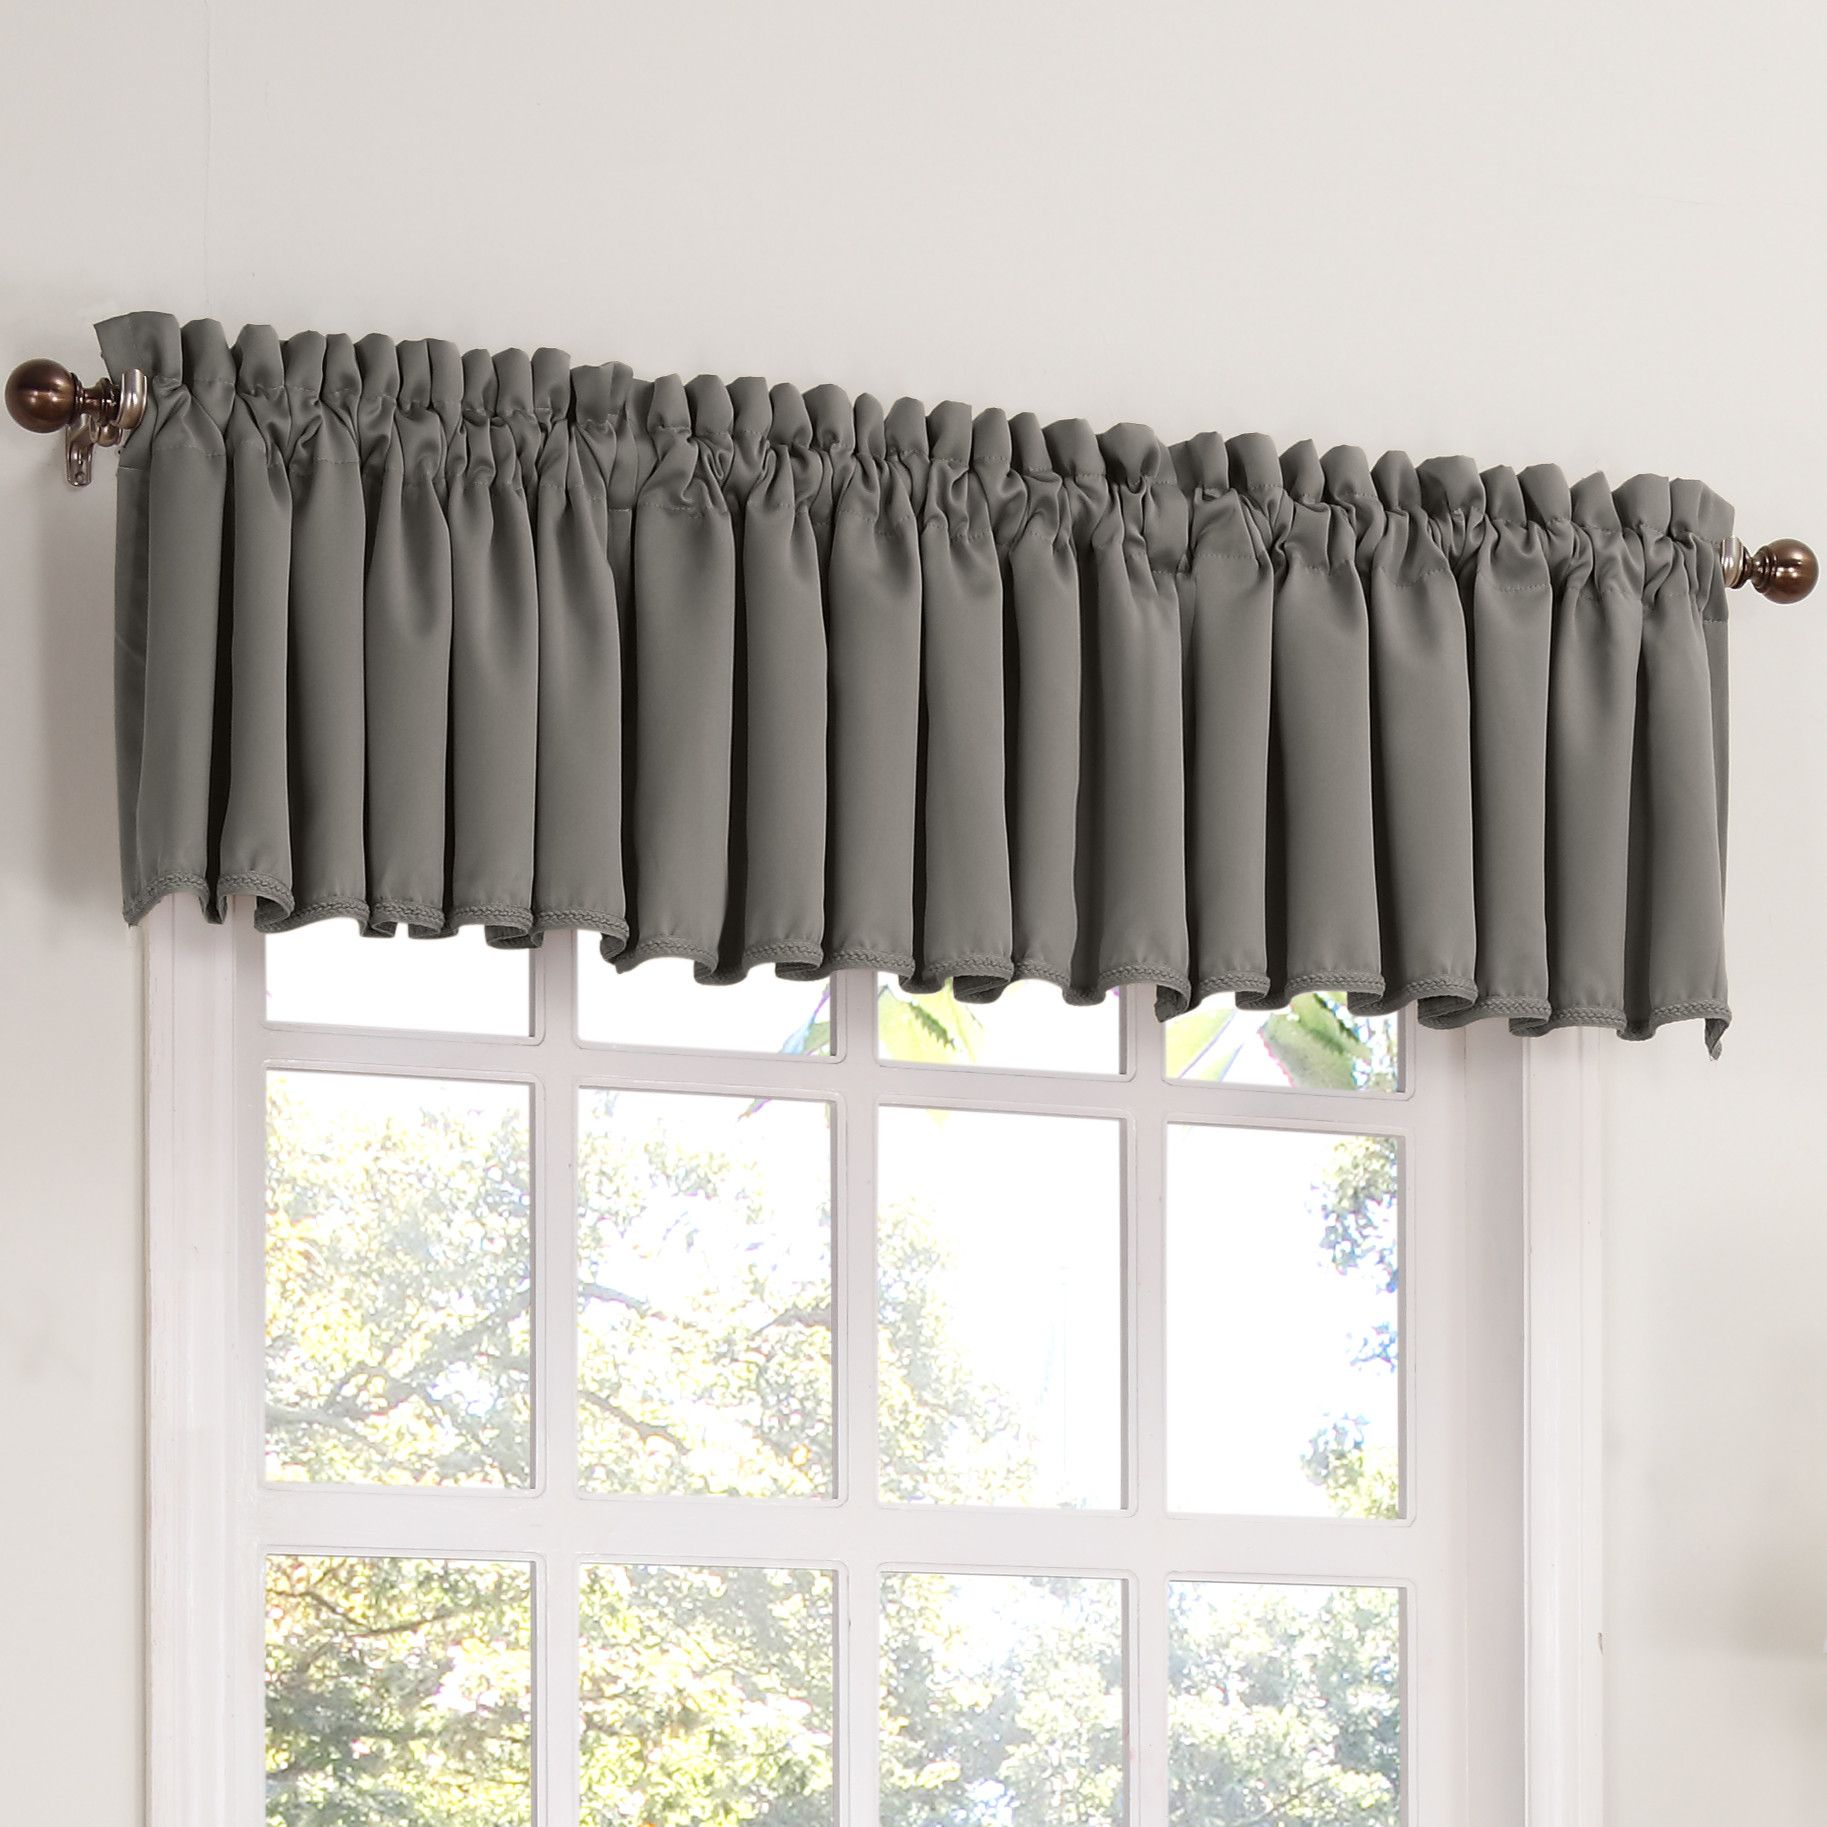 Marcy Thermal Curtain Valance